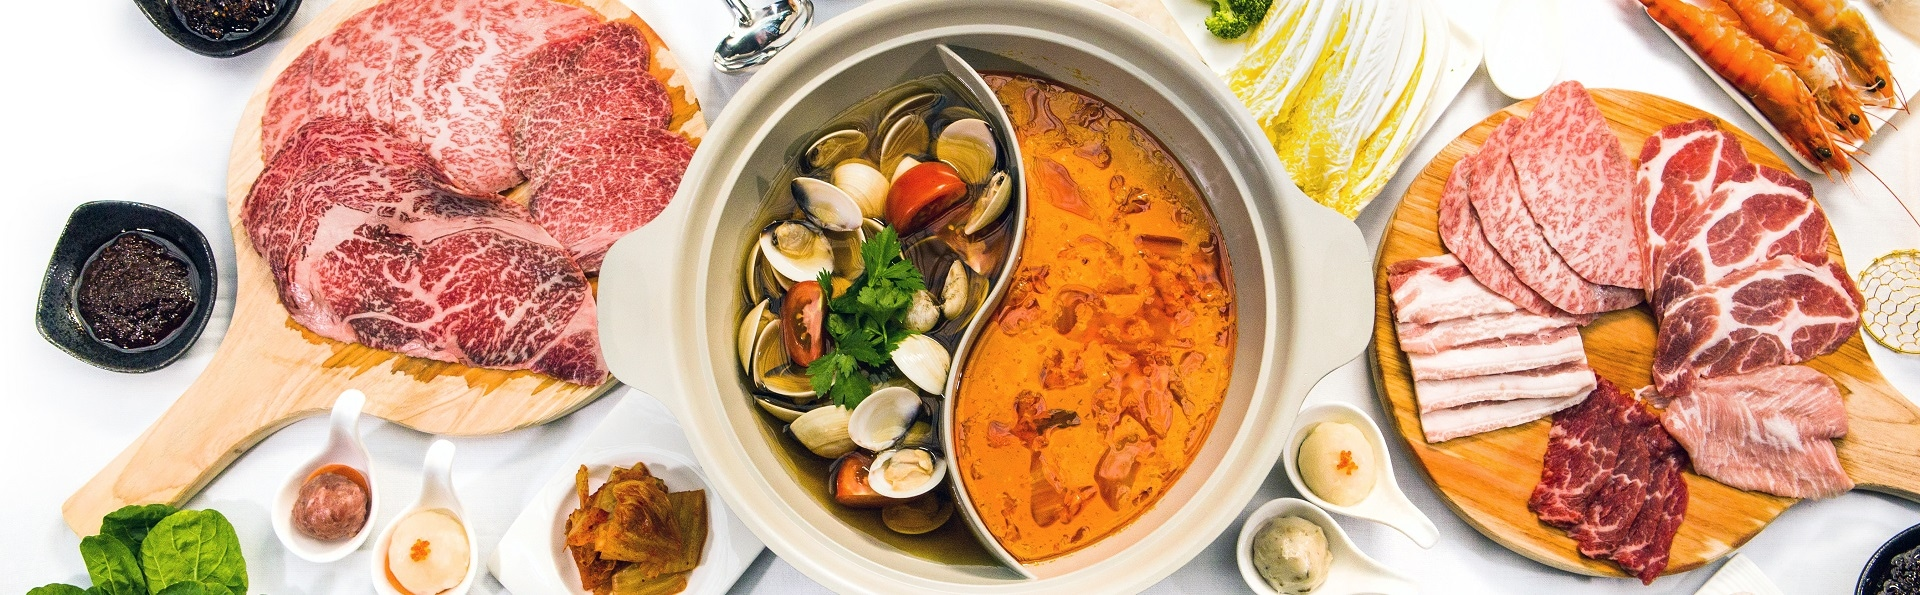 Hotpot Kingdom in Marina Bay Sands Singapore Chinese Cuisine